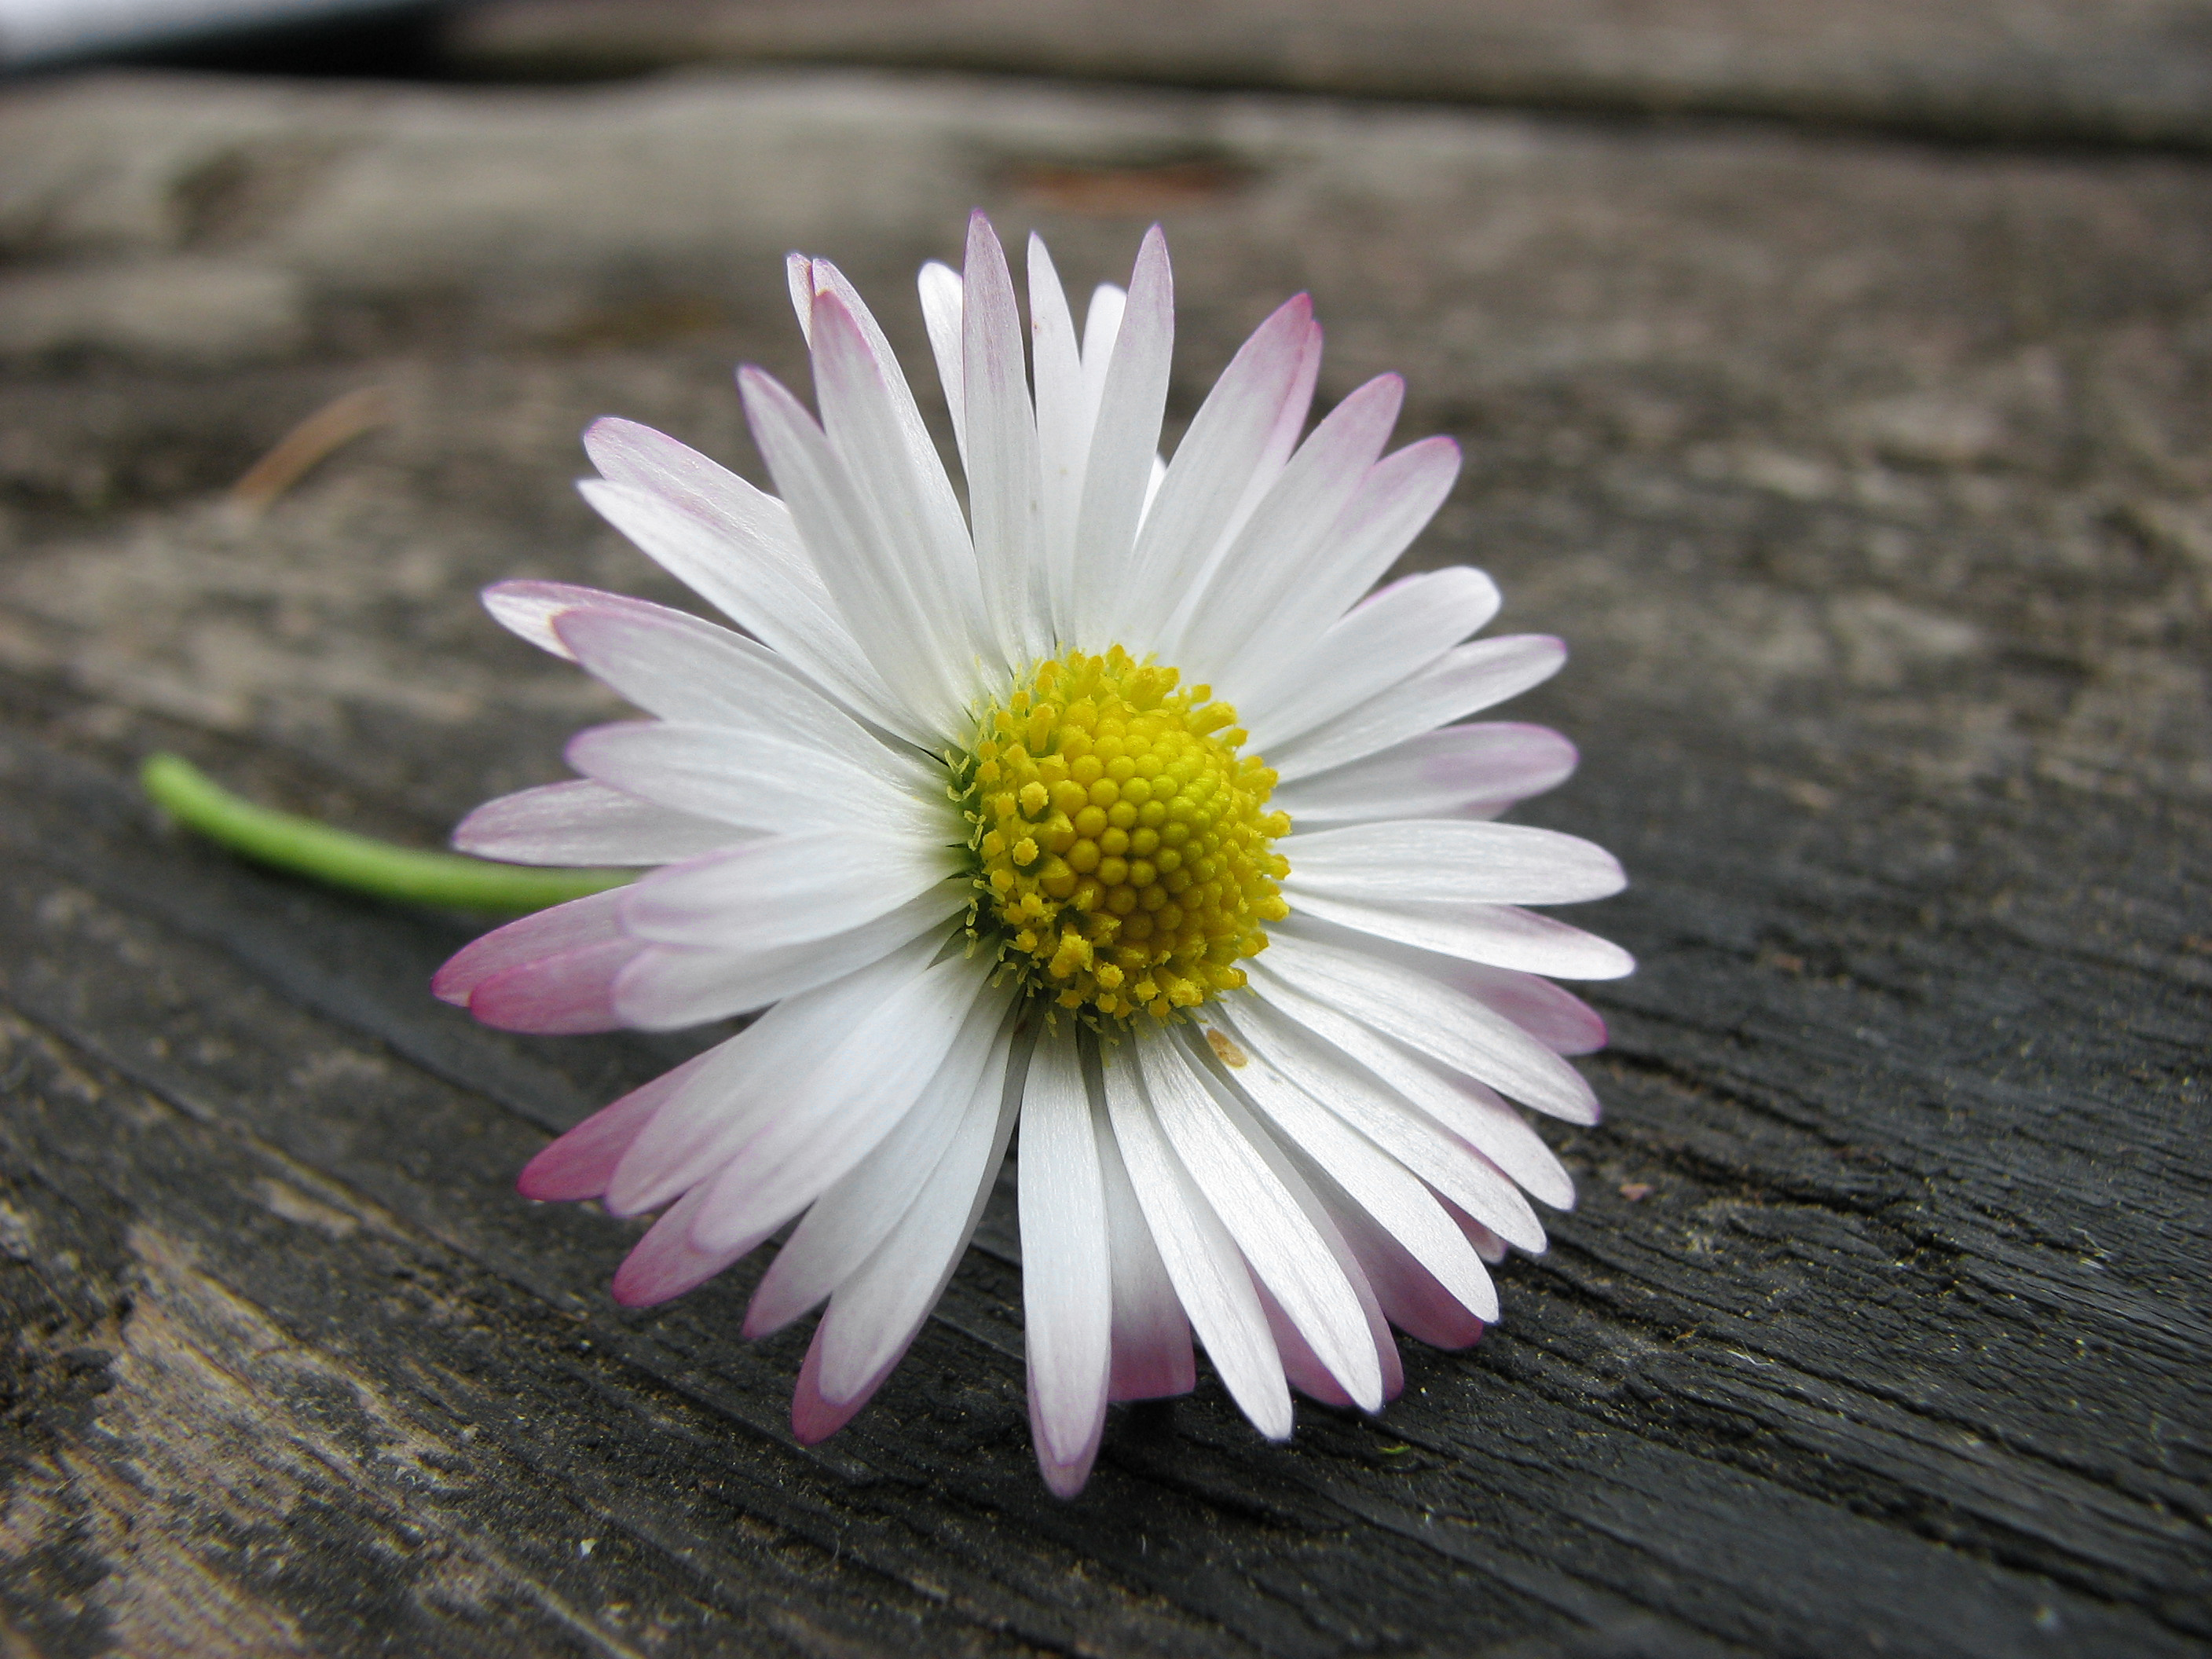 25 beautiful and vivid daisy images this flower shows the simplicity faith and love daisy flowers have many colors like white yellow pink and purple but white color flower is mightylinksfo